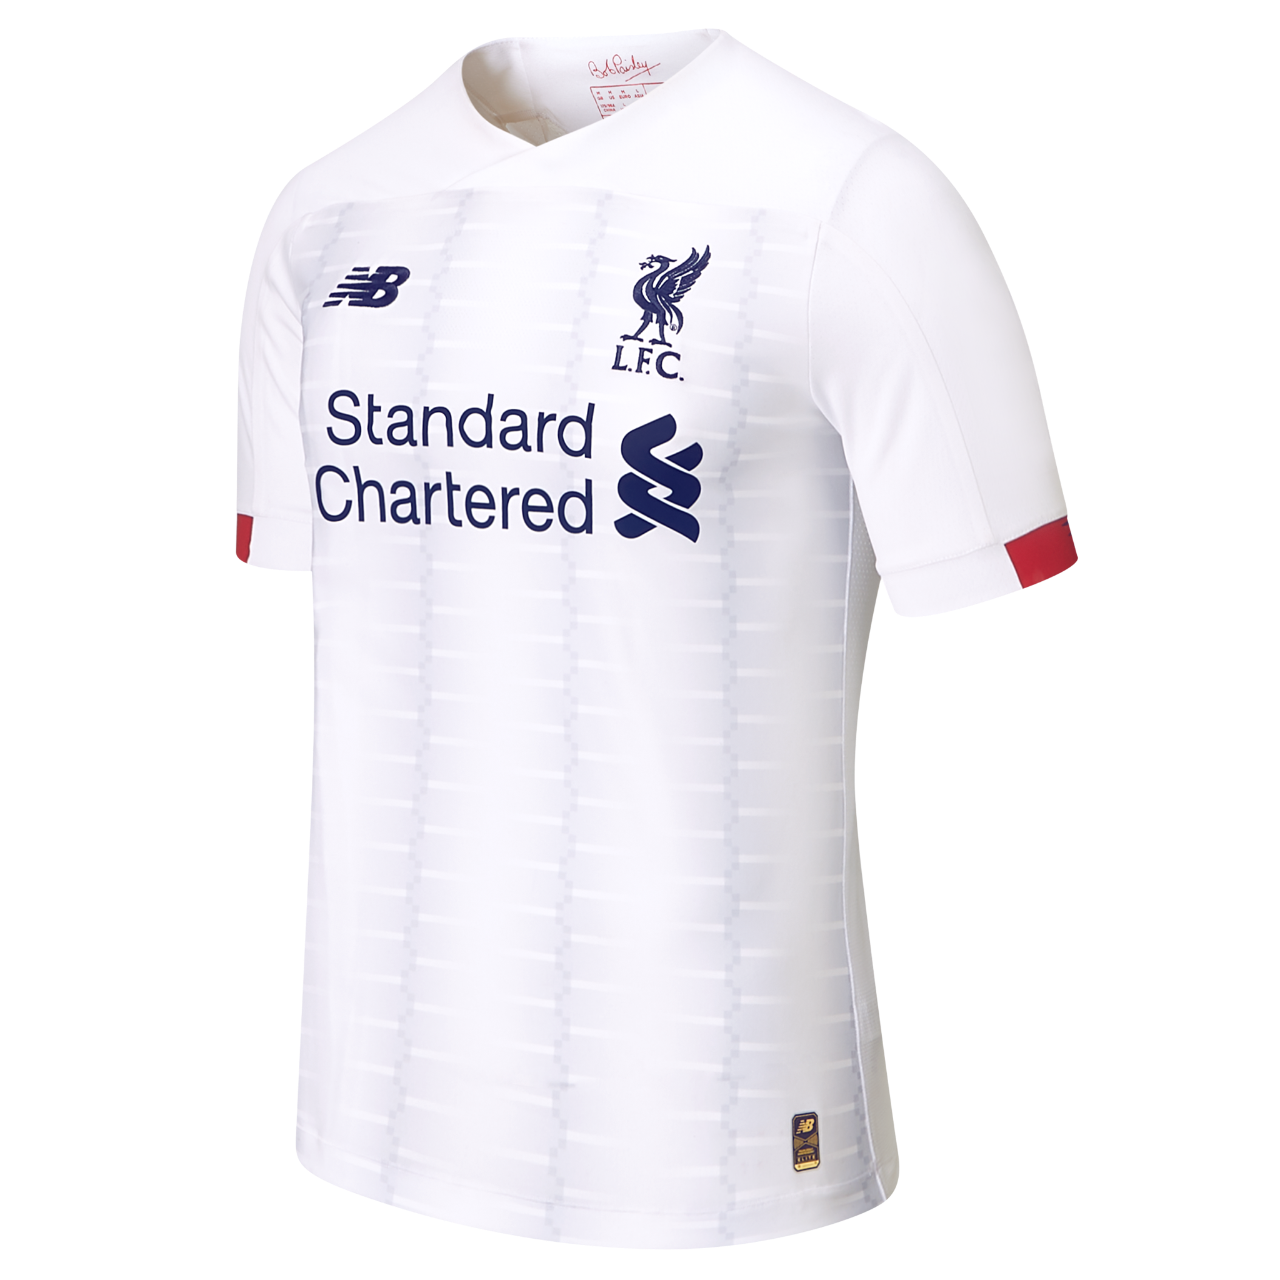 release date 39371 7dbcf Liverpool unveil lovely new white away kit for 2019/20 ...